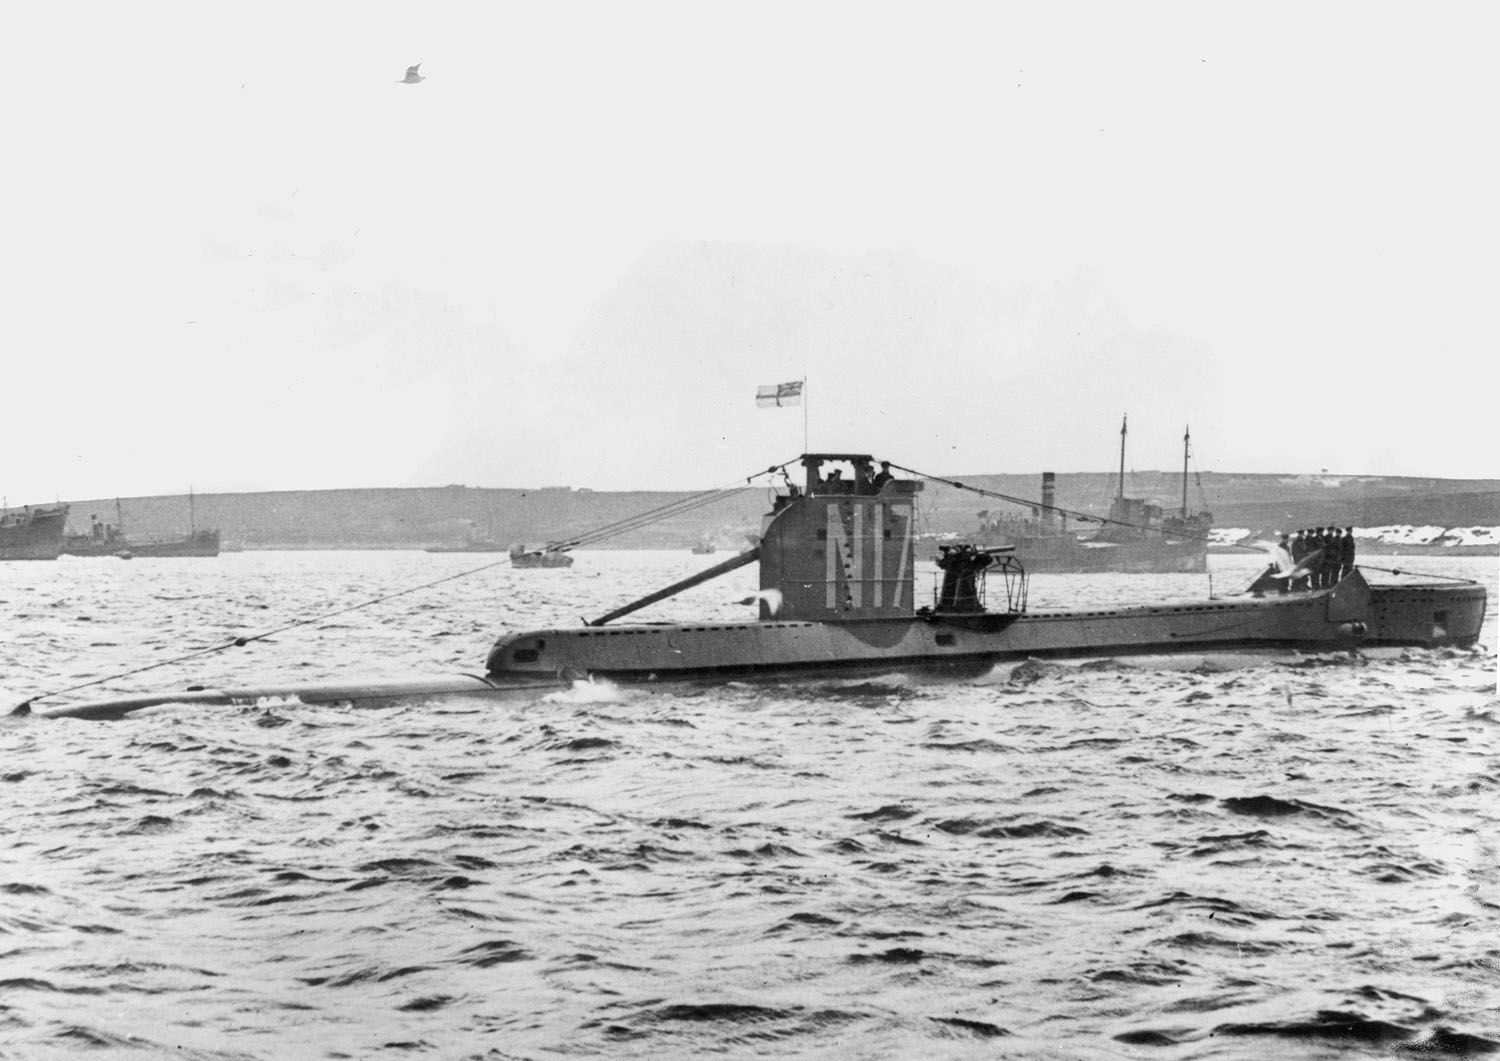 The Discovery of Submarine 'HMS Urge' Debunked Conspiracy Theories